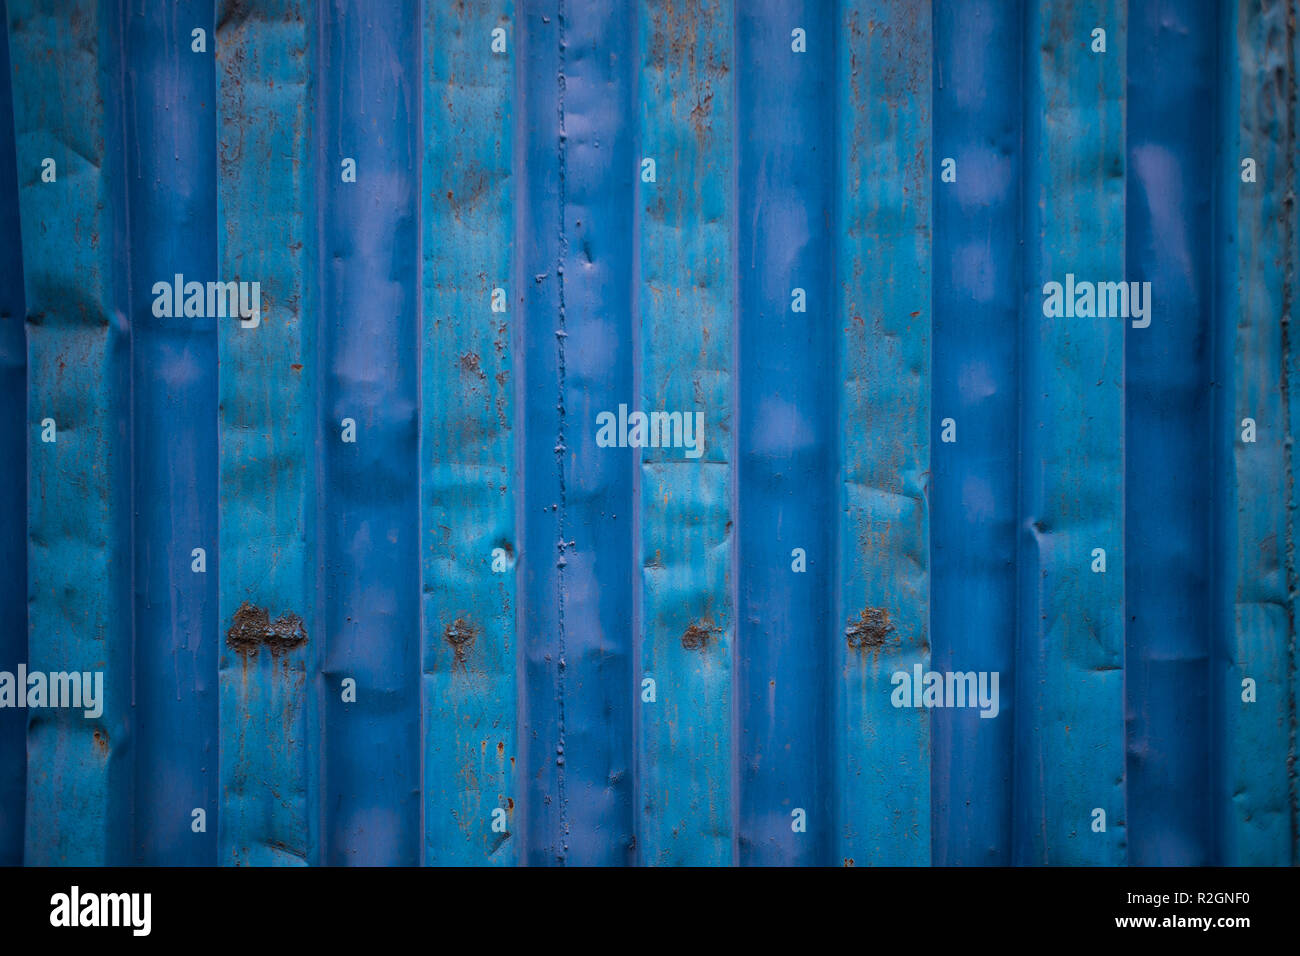 Blue cargo ship container texture close up without labels as a graphic resource - Stock Image